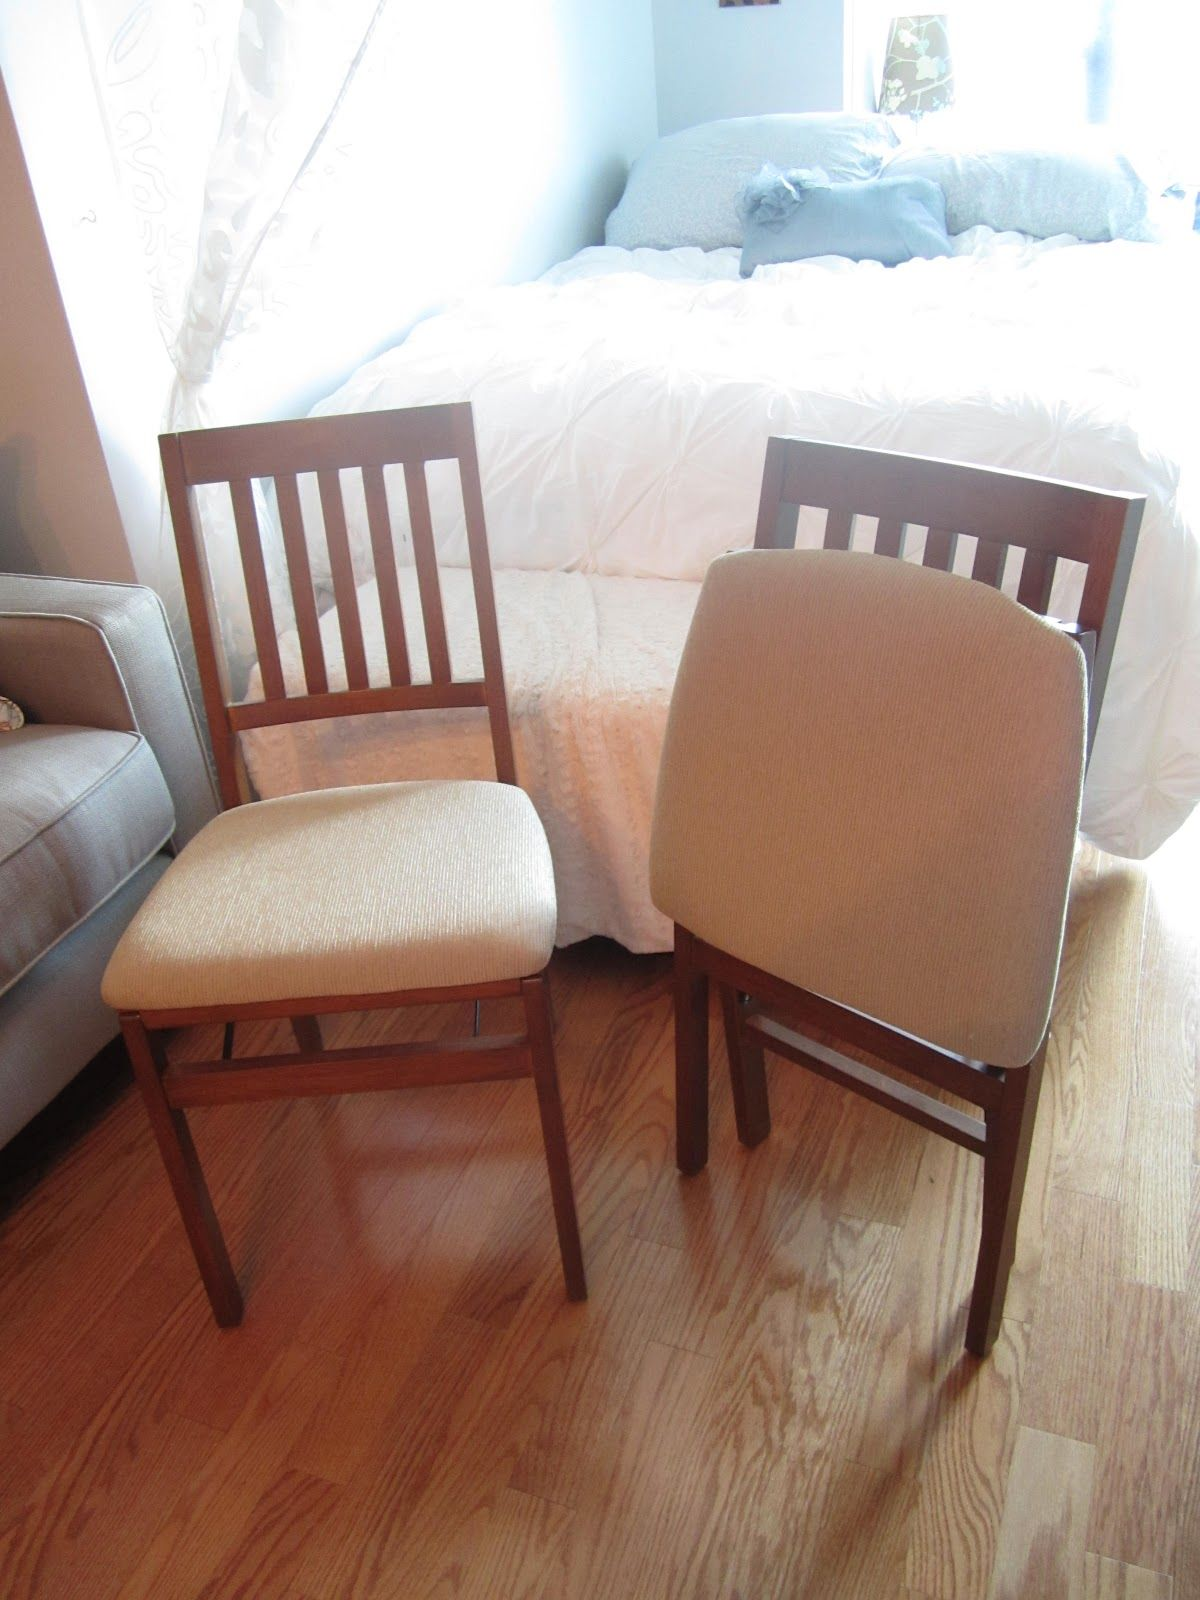 Costco Wooden Folding Chairs Eero Saarinen Womb Chair Original Google Search Cool Ideas And Products